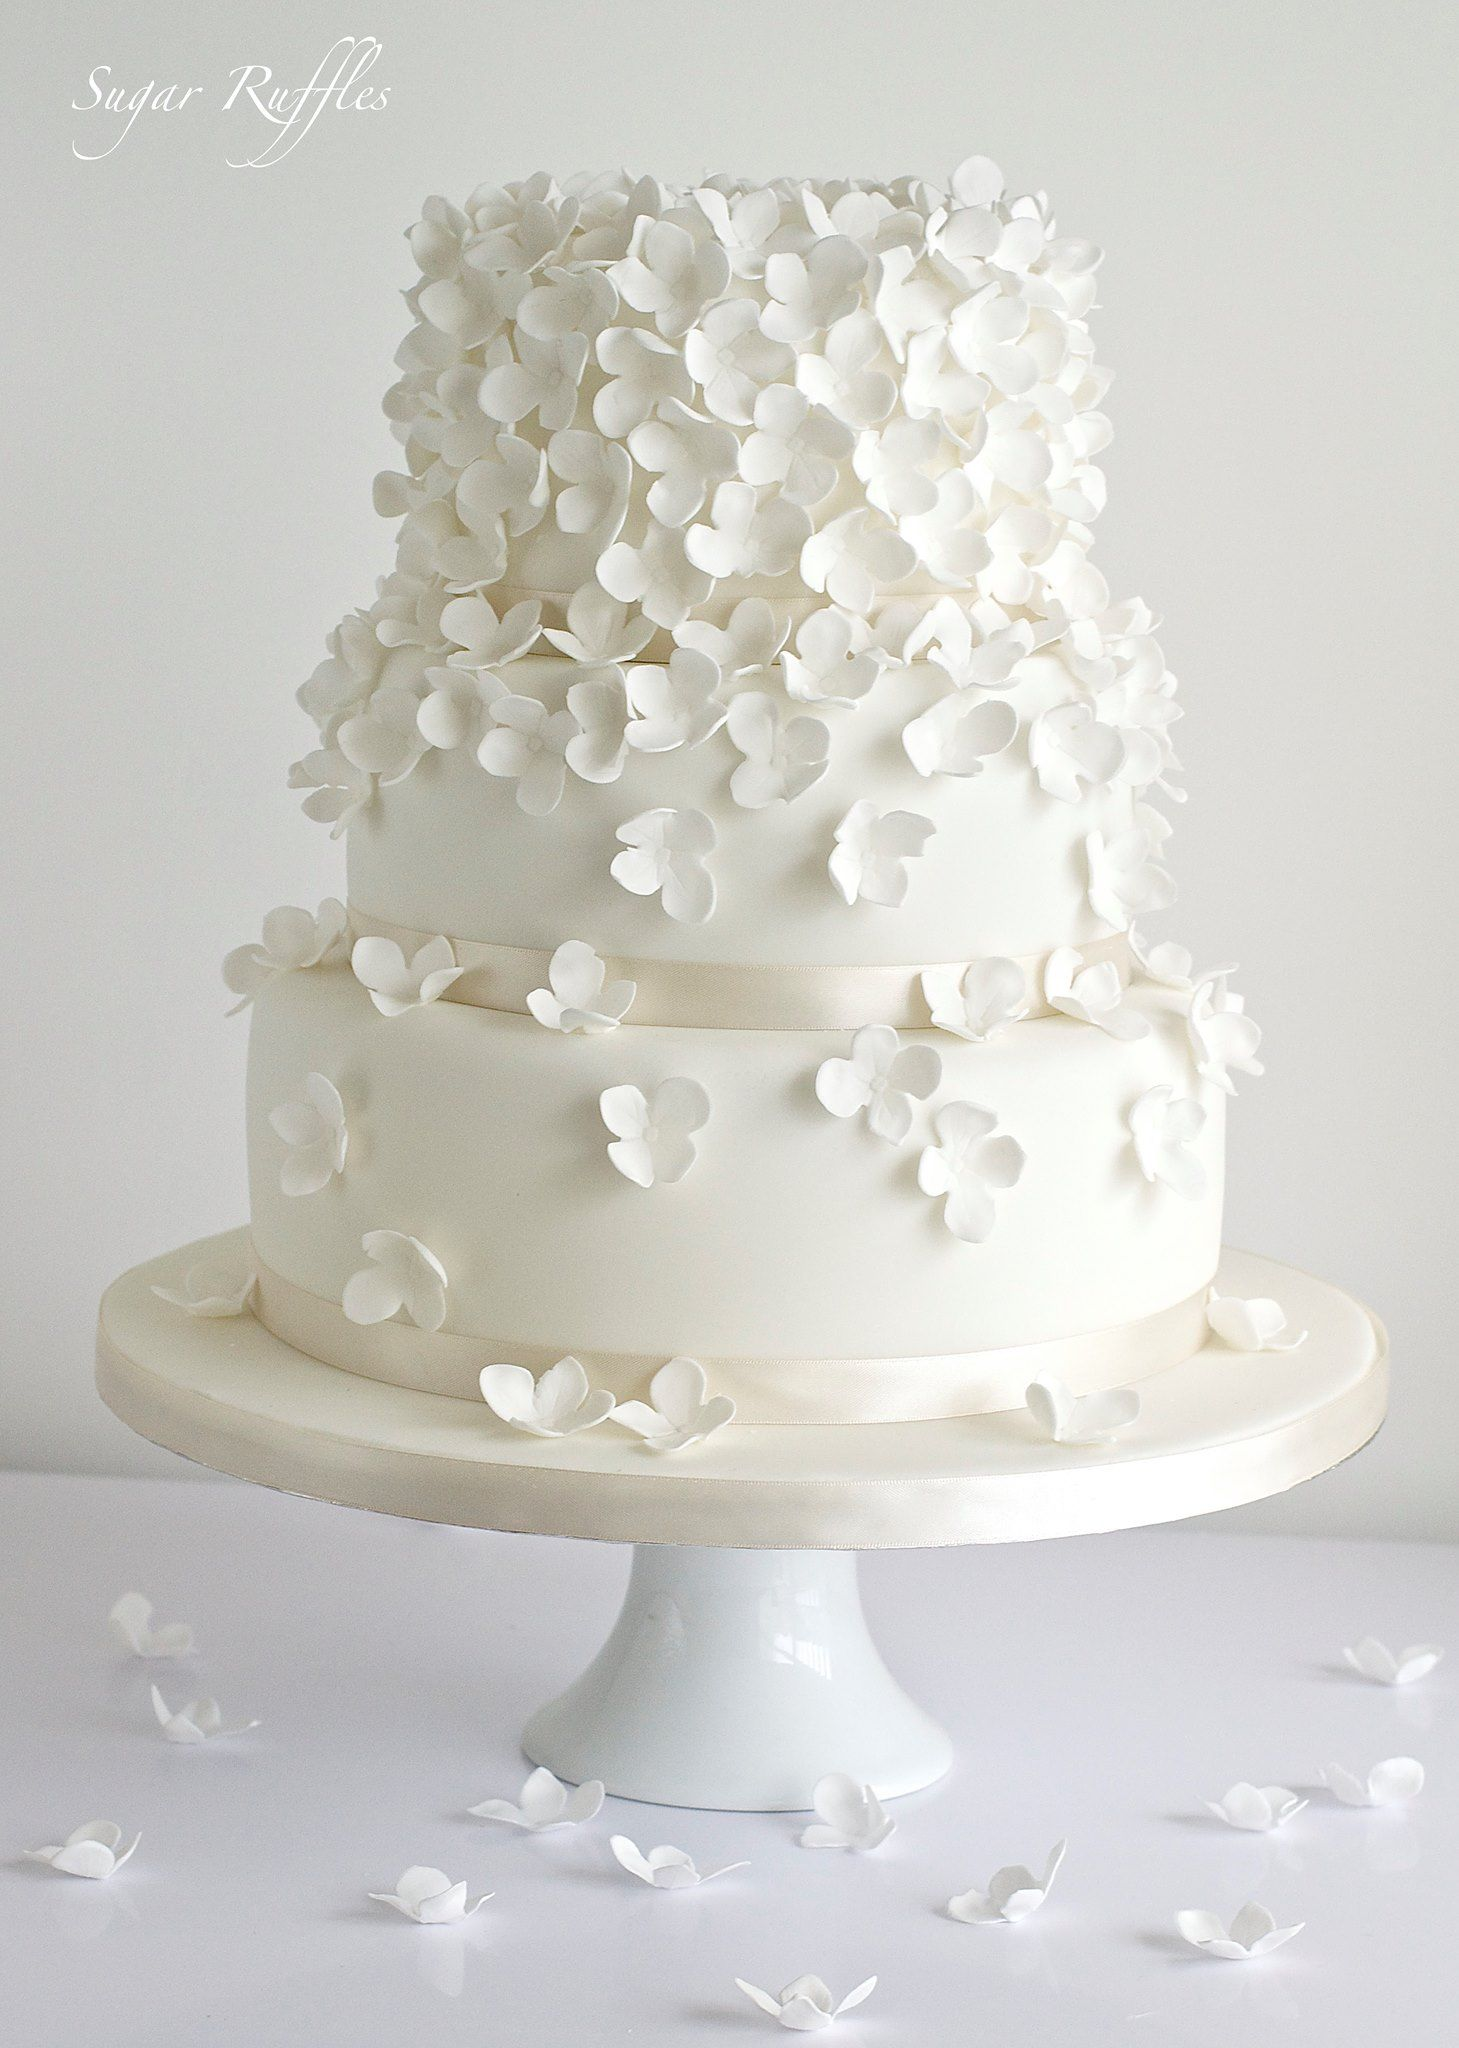 Pin by SIGNATURE BRIDE on Cakes & Toppers | Pinterest | Magazines ...